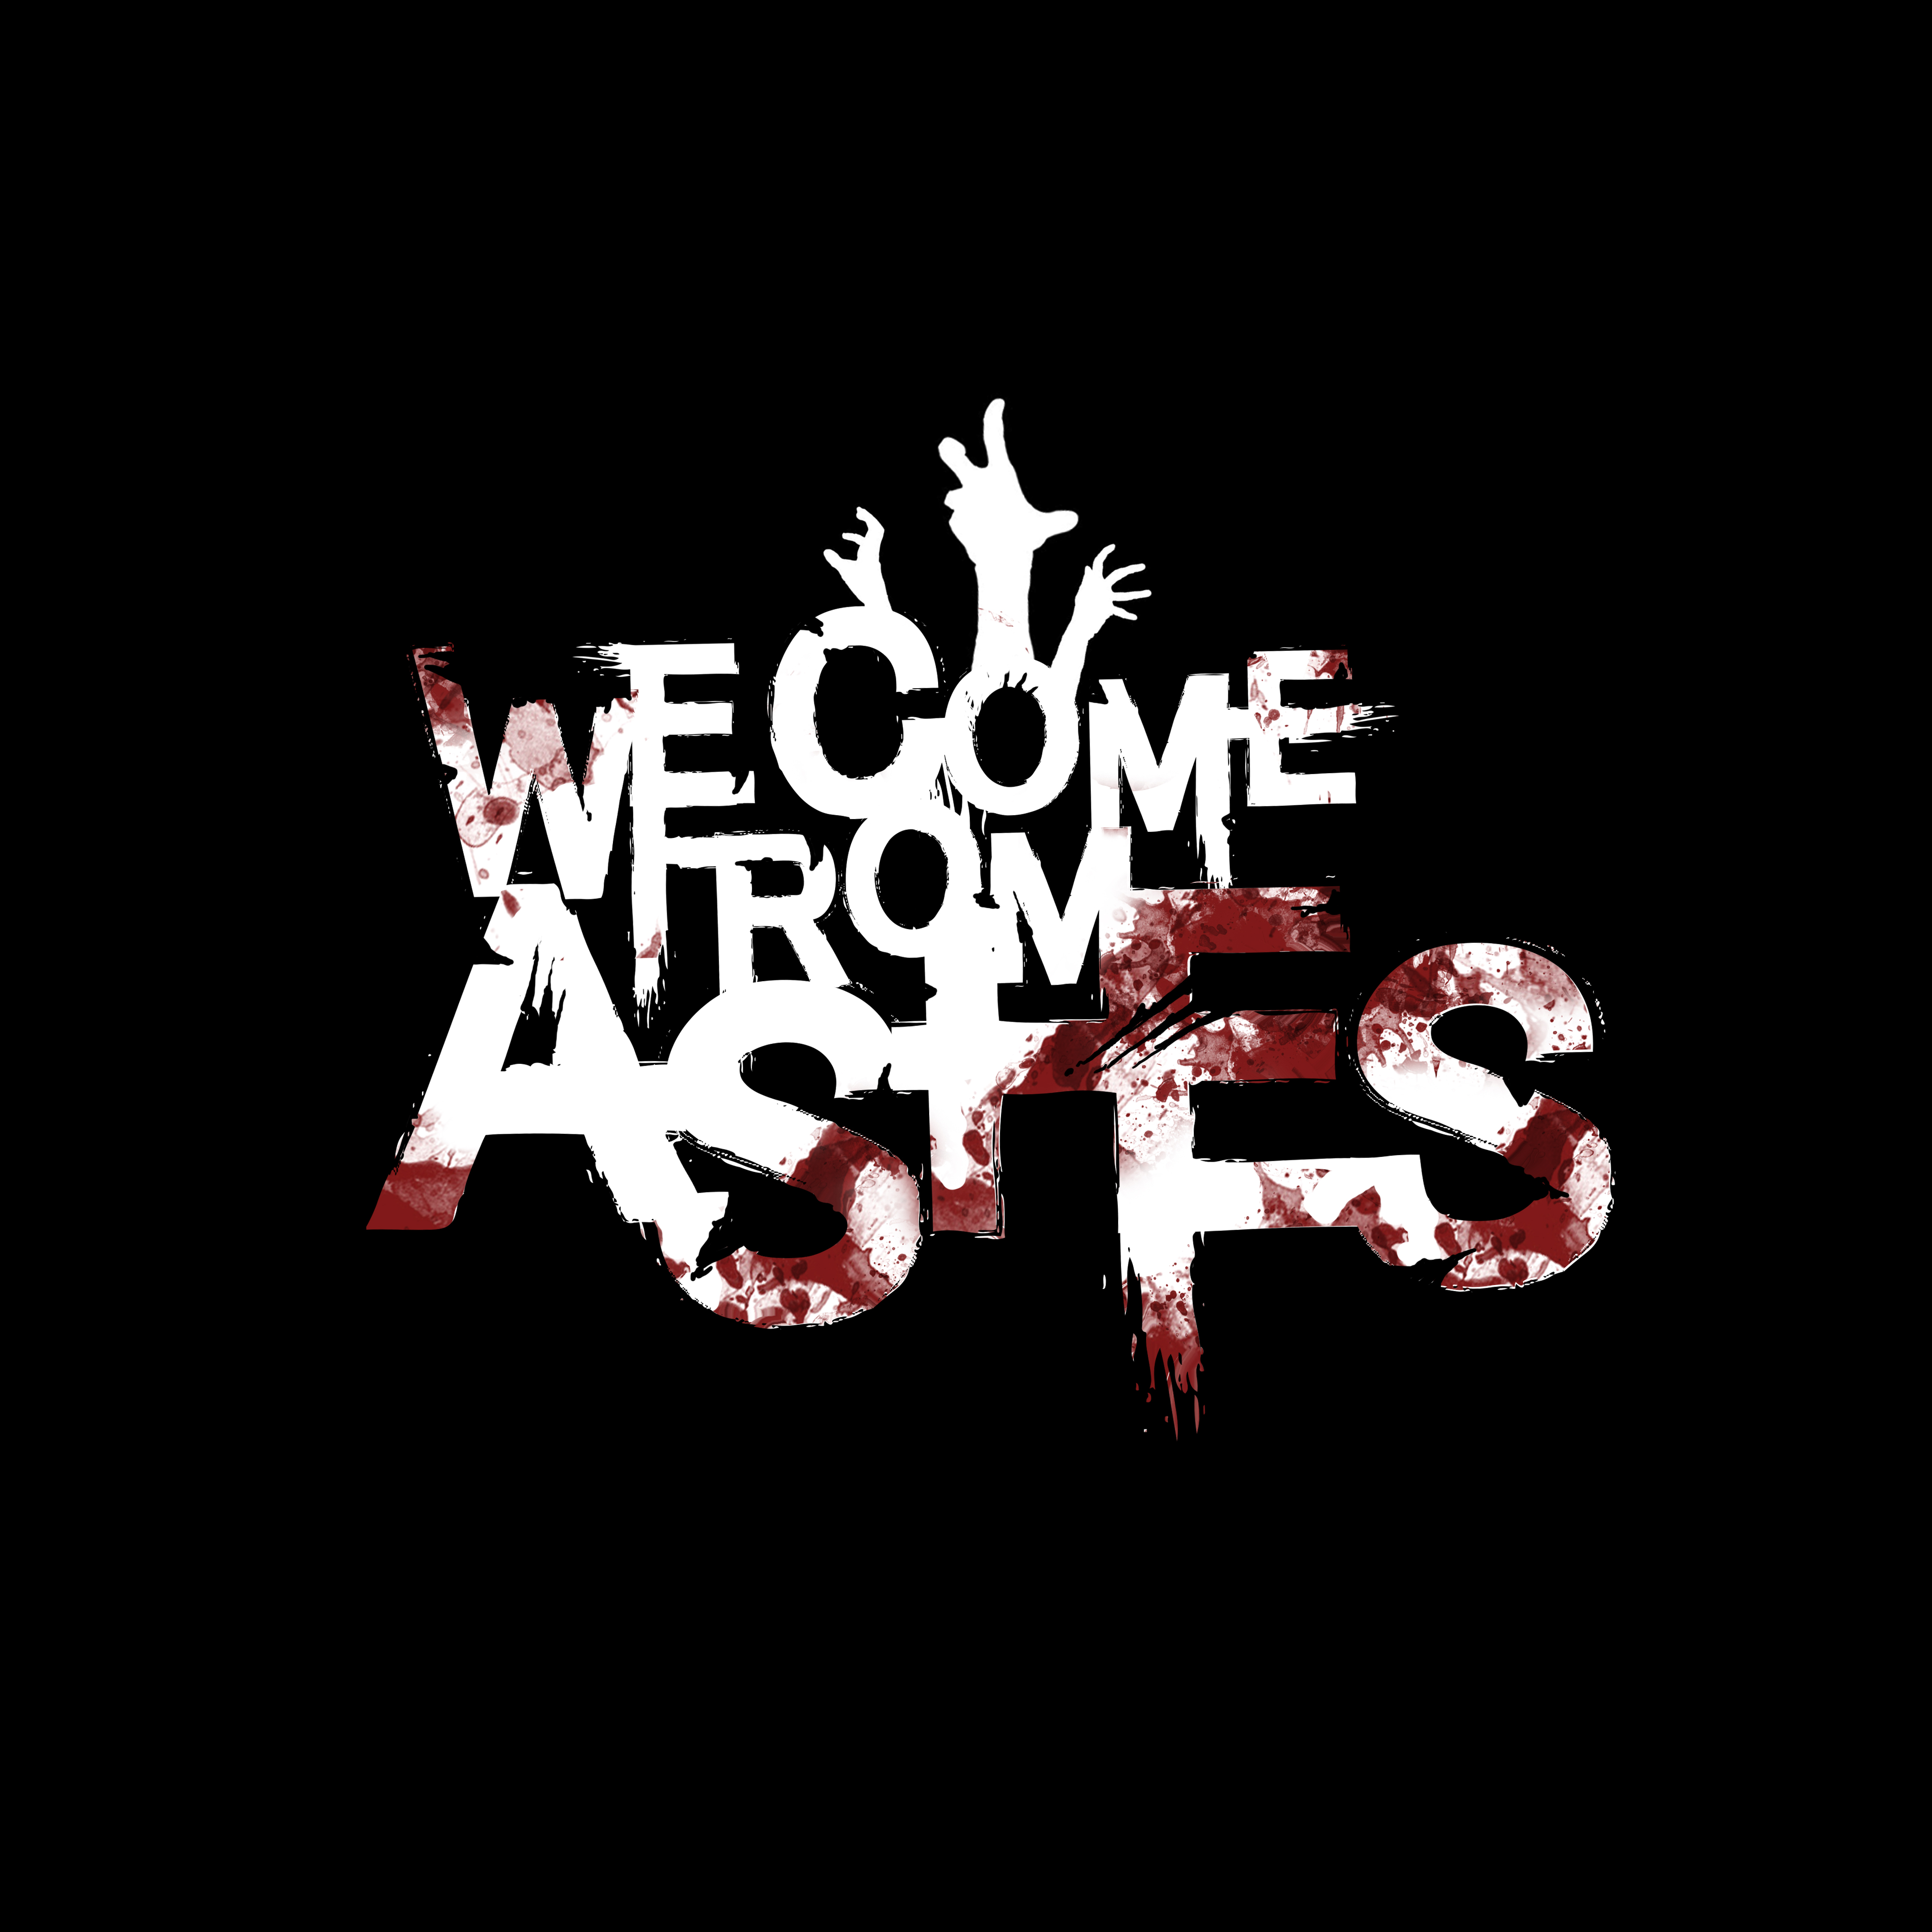 We Come From Ashes merch